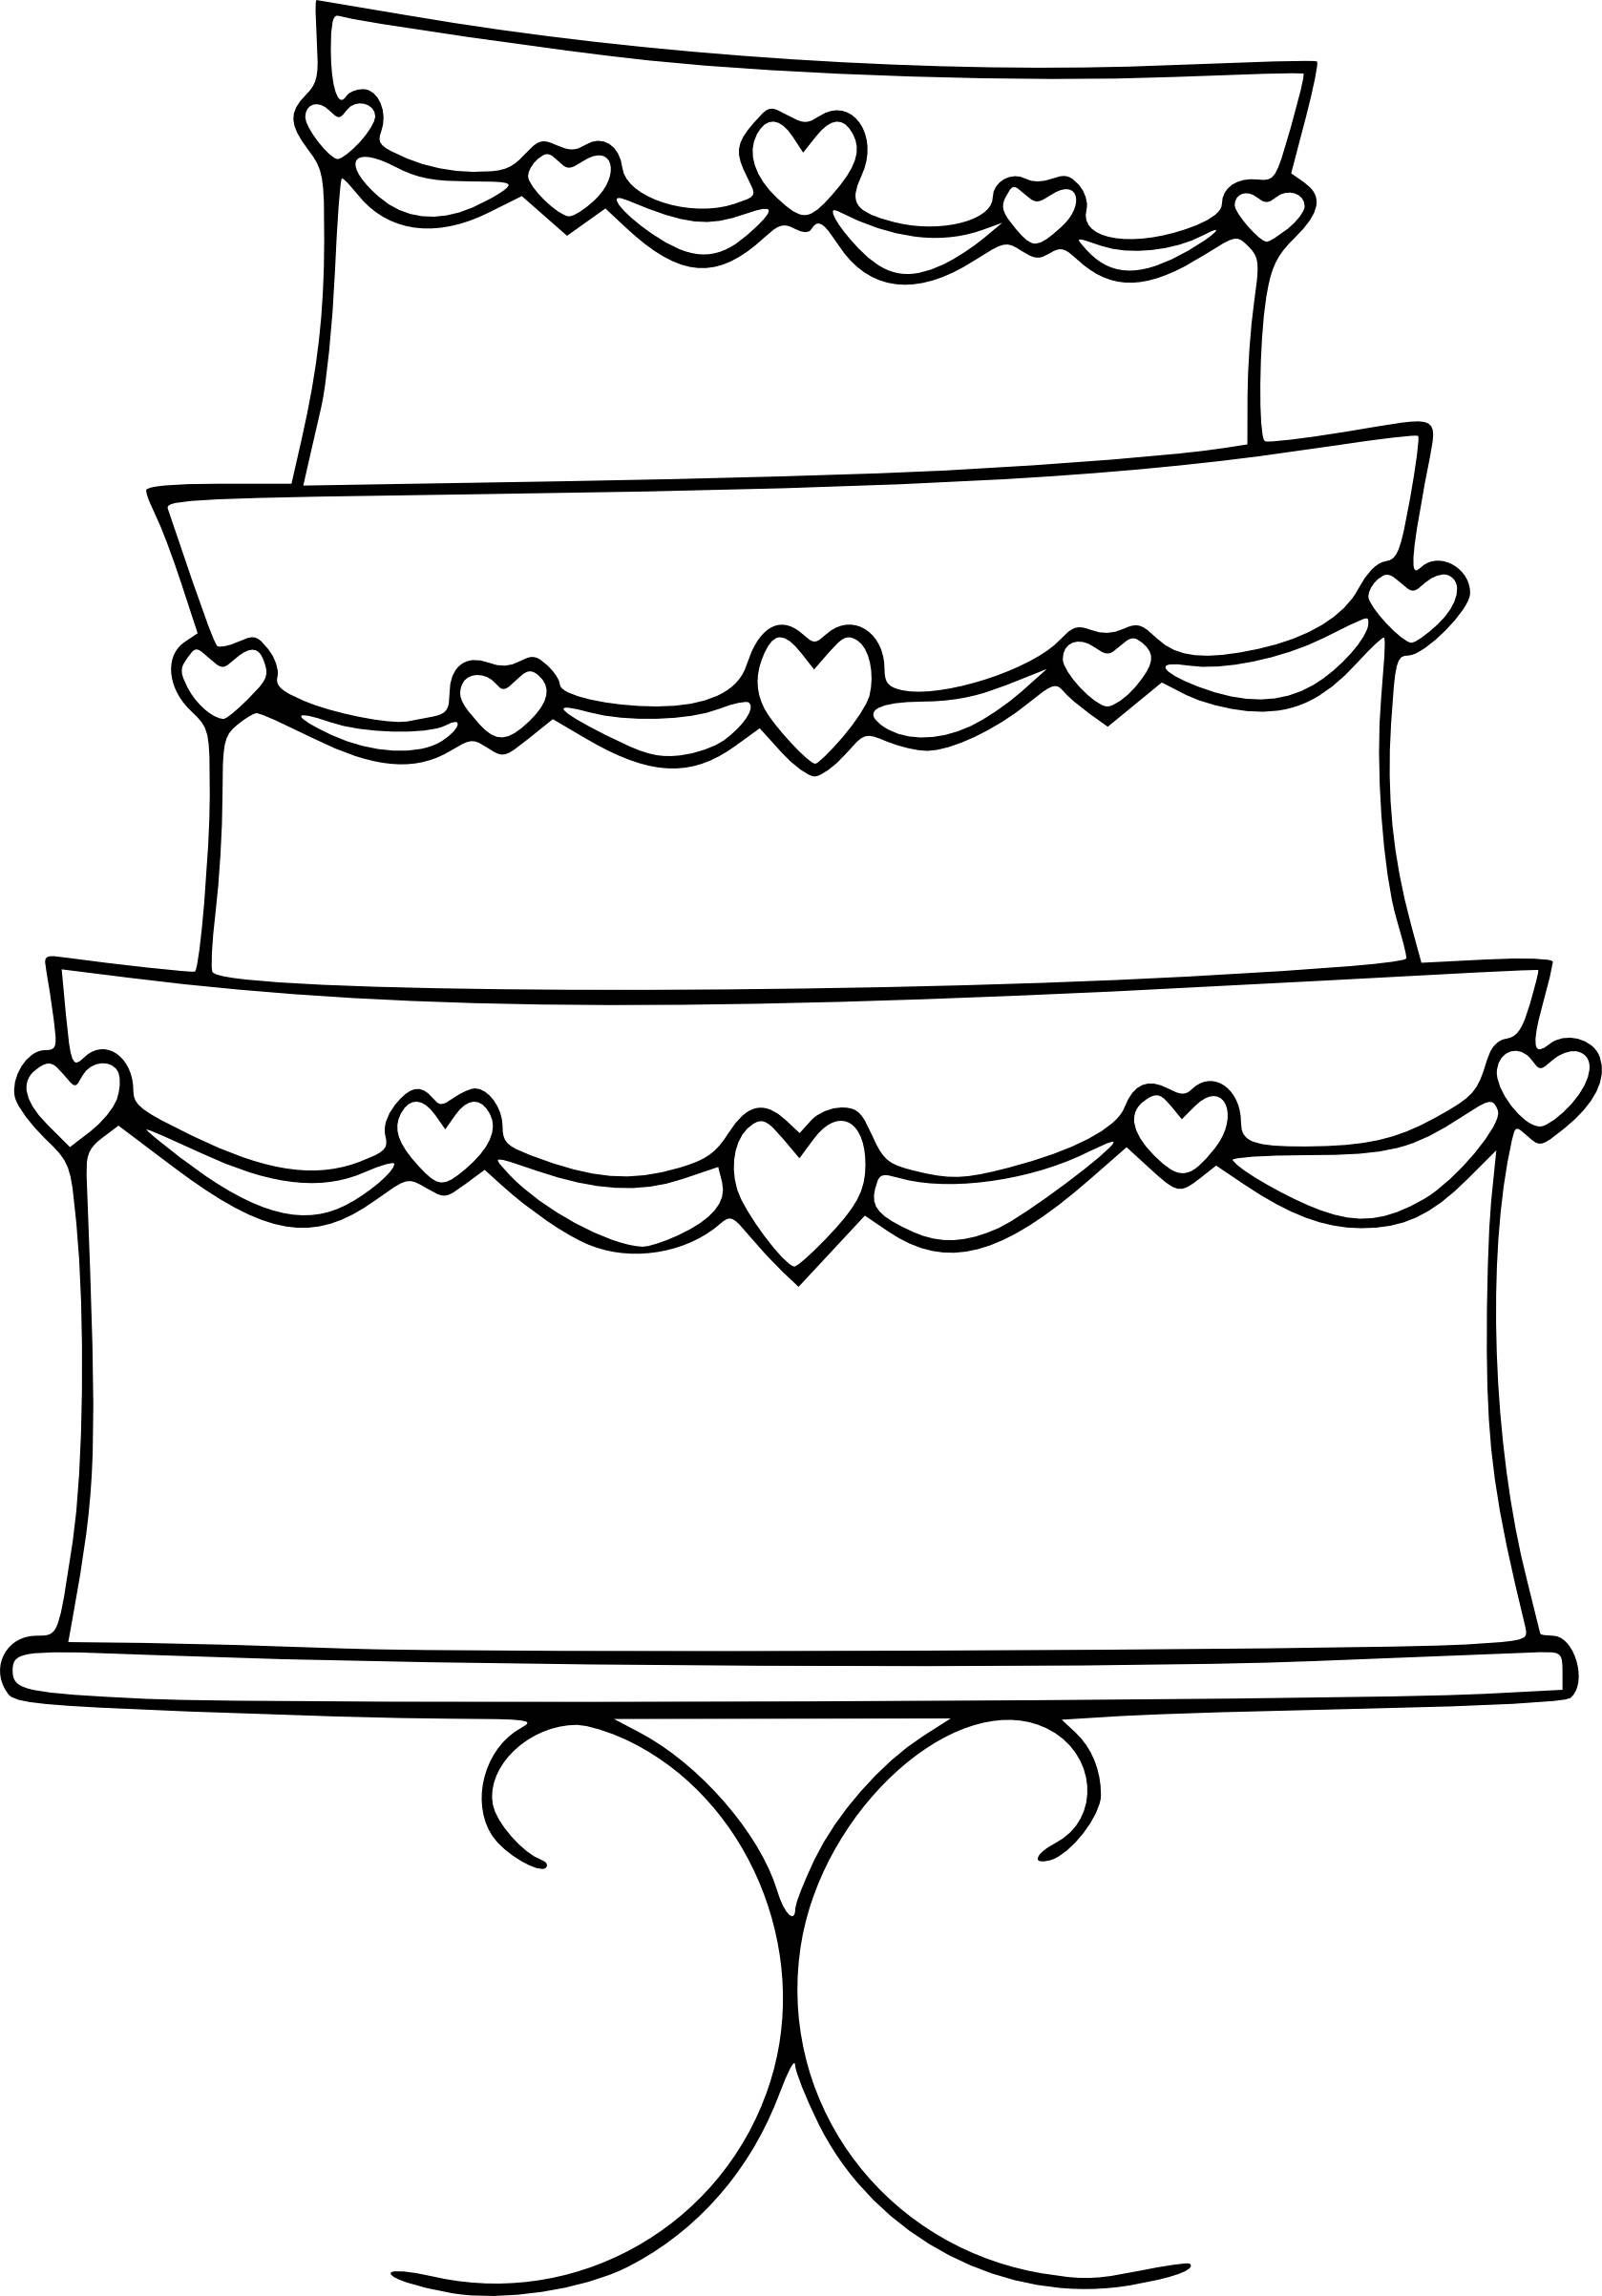 Pin By Silvia Tysko On Cards Digi Wedding Coloring Pages Free Coloring Sheets Cake Drawing